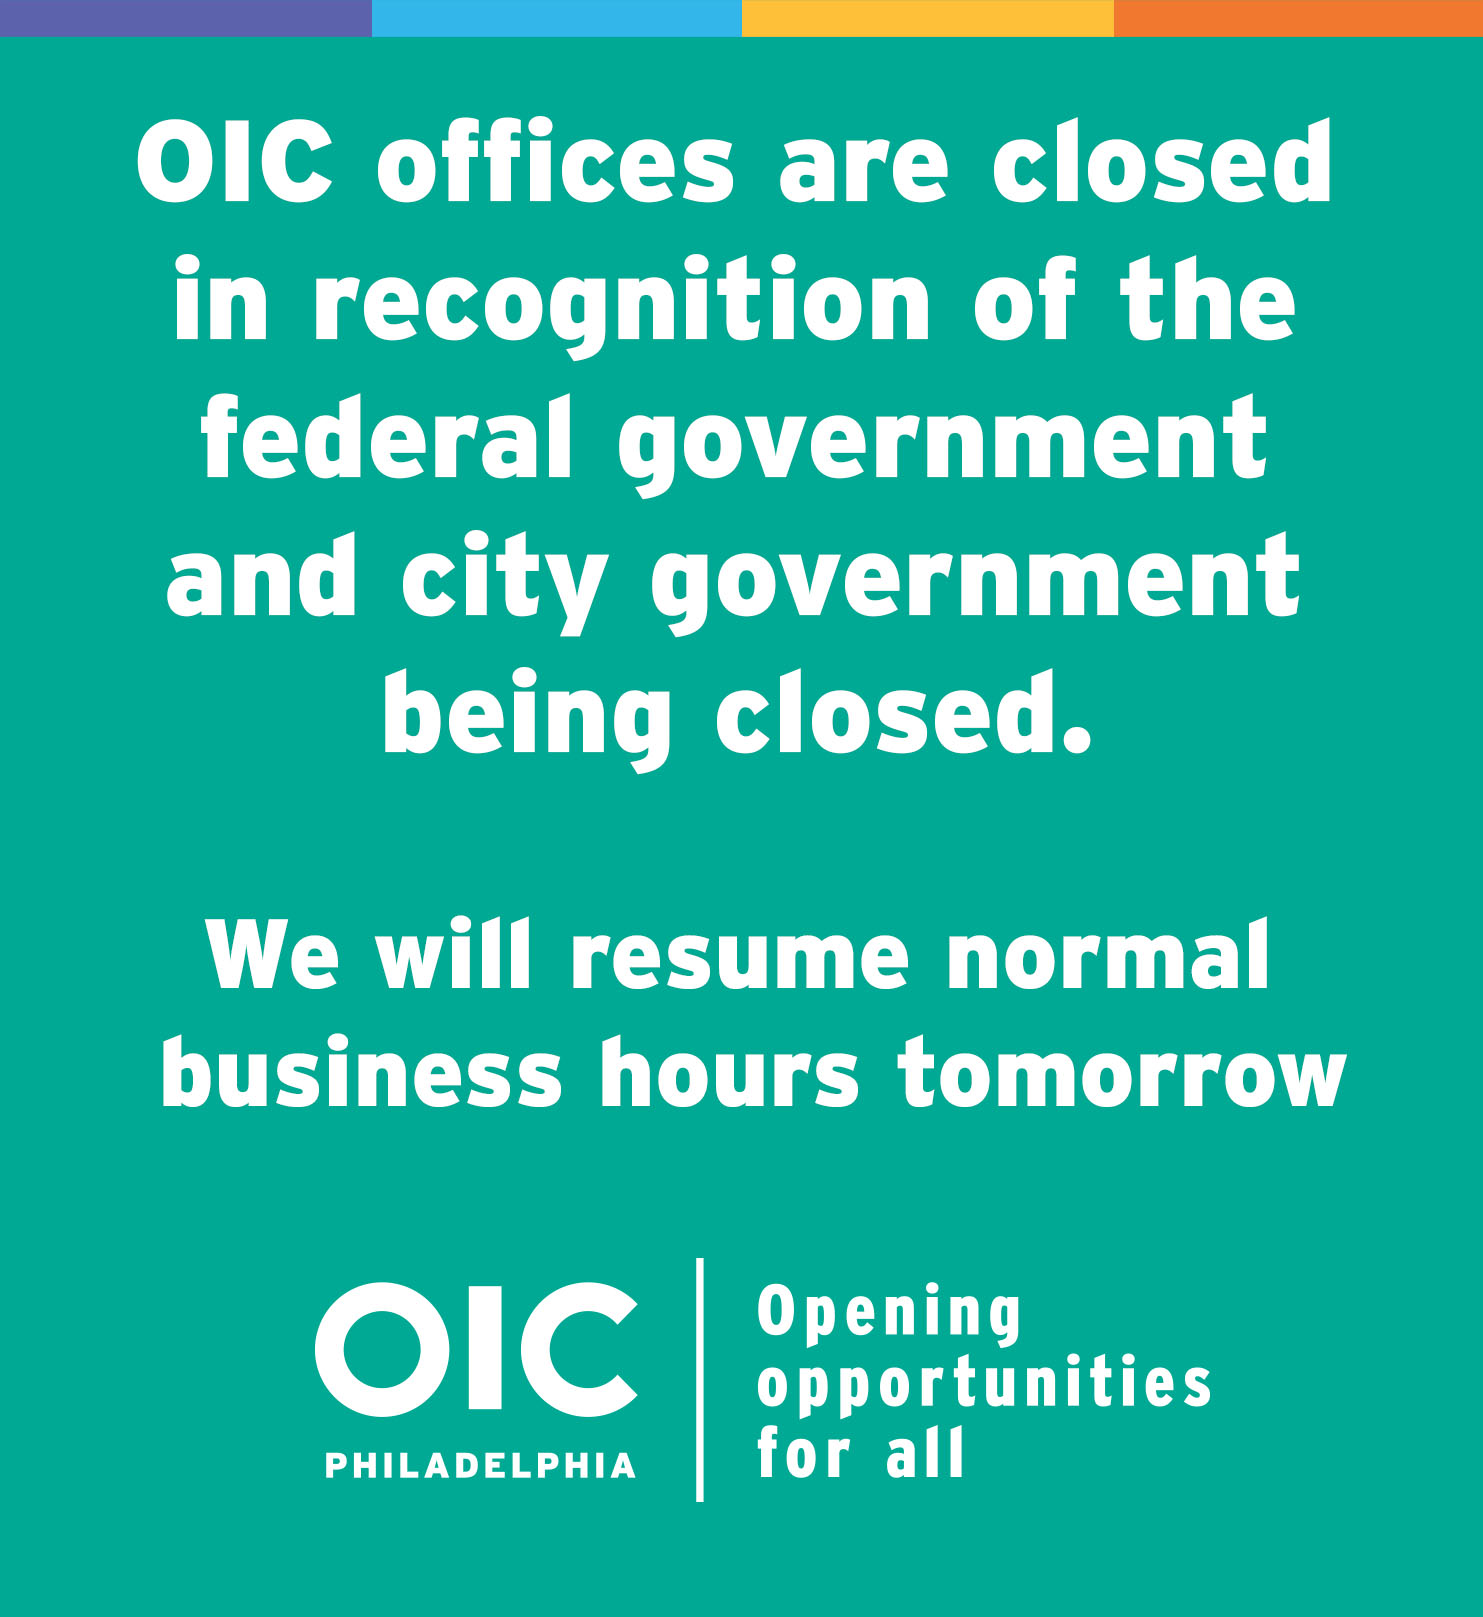 OIC Offices are closed on Monday, October 12, 2020